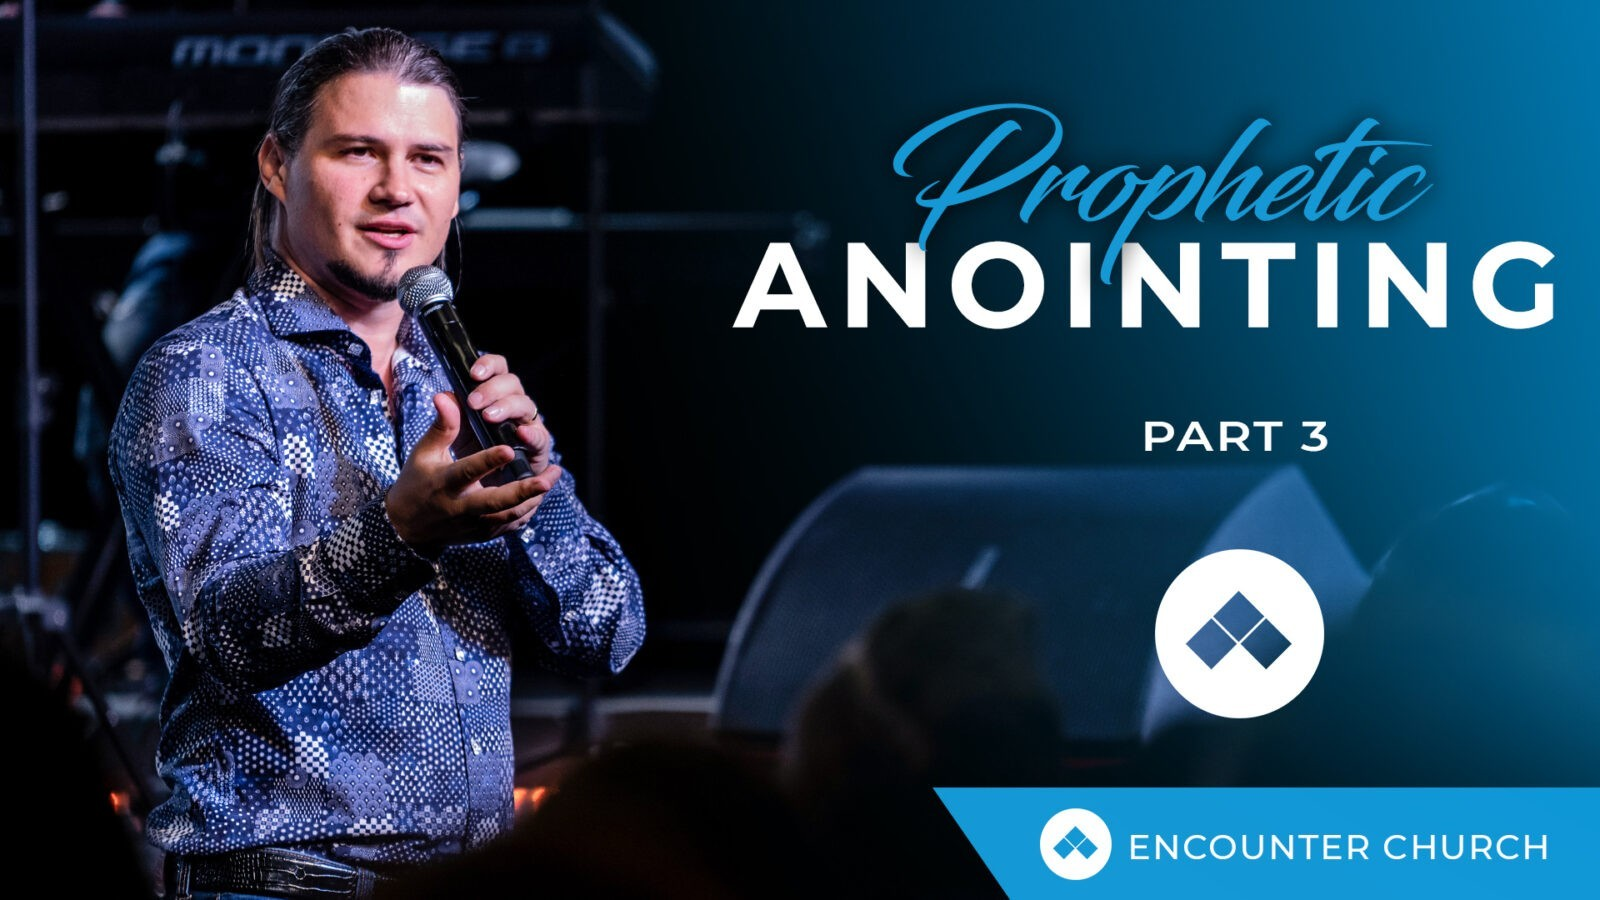 The Prophetic Anointing Part 3